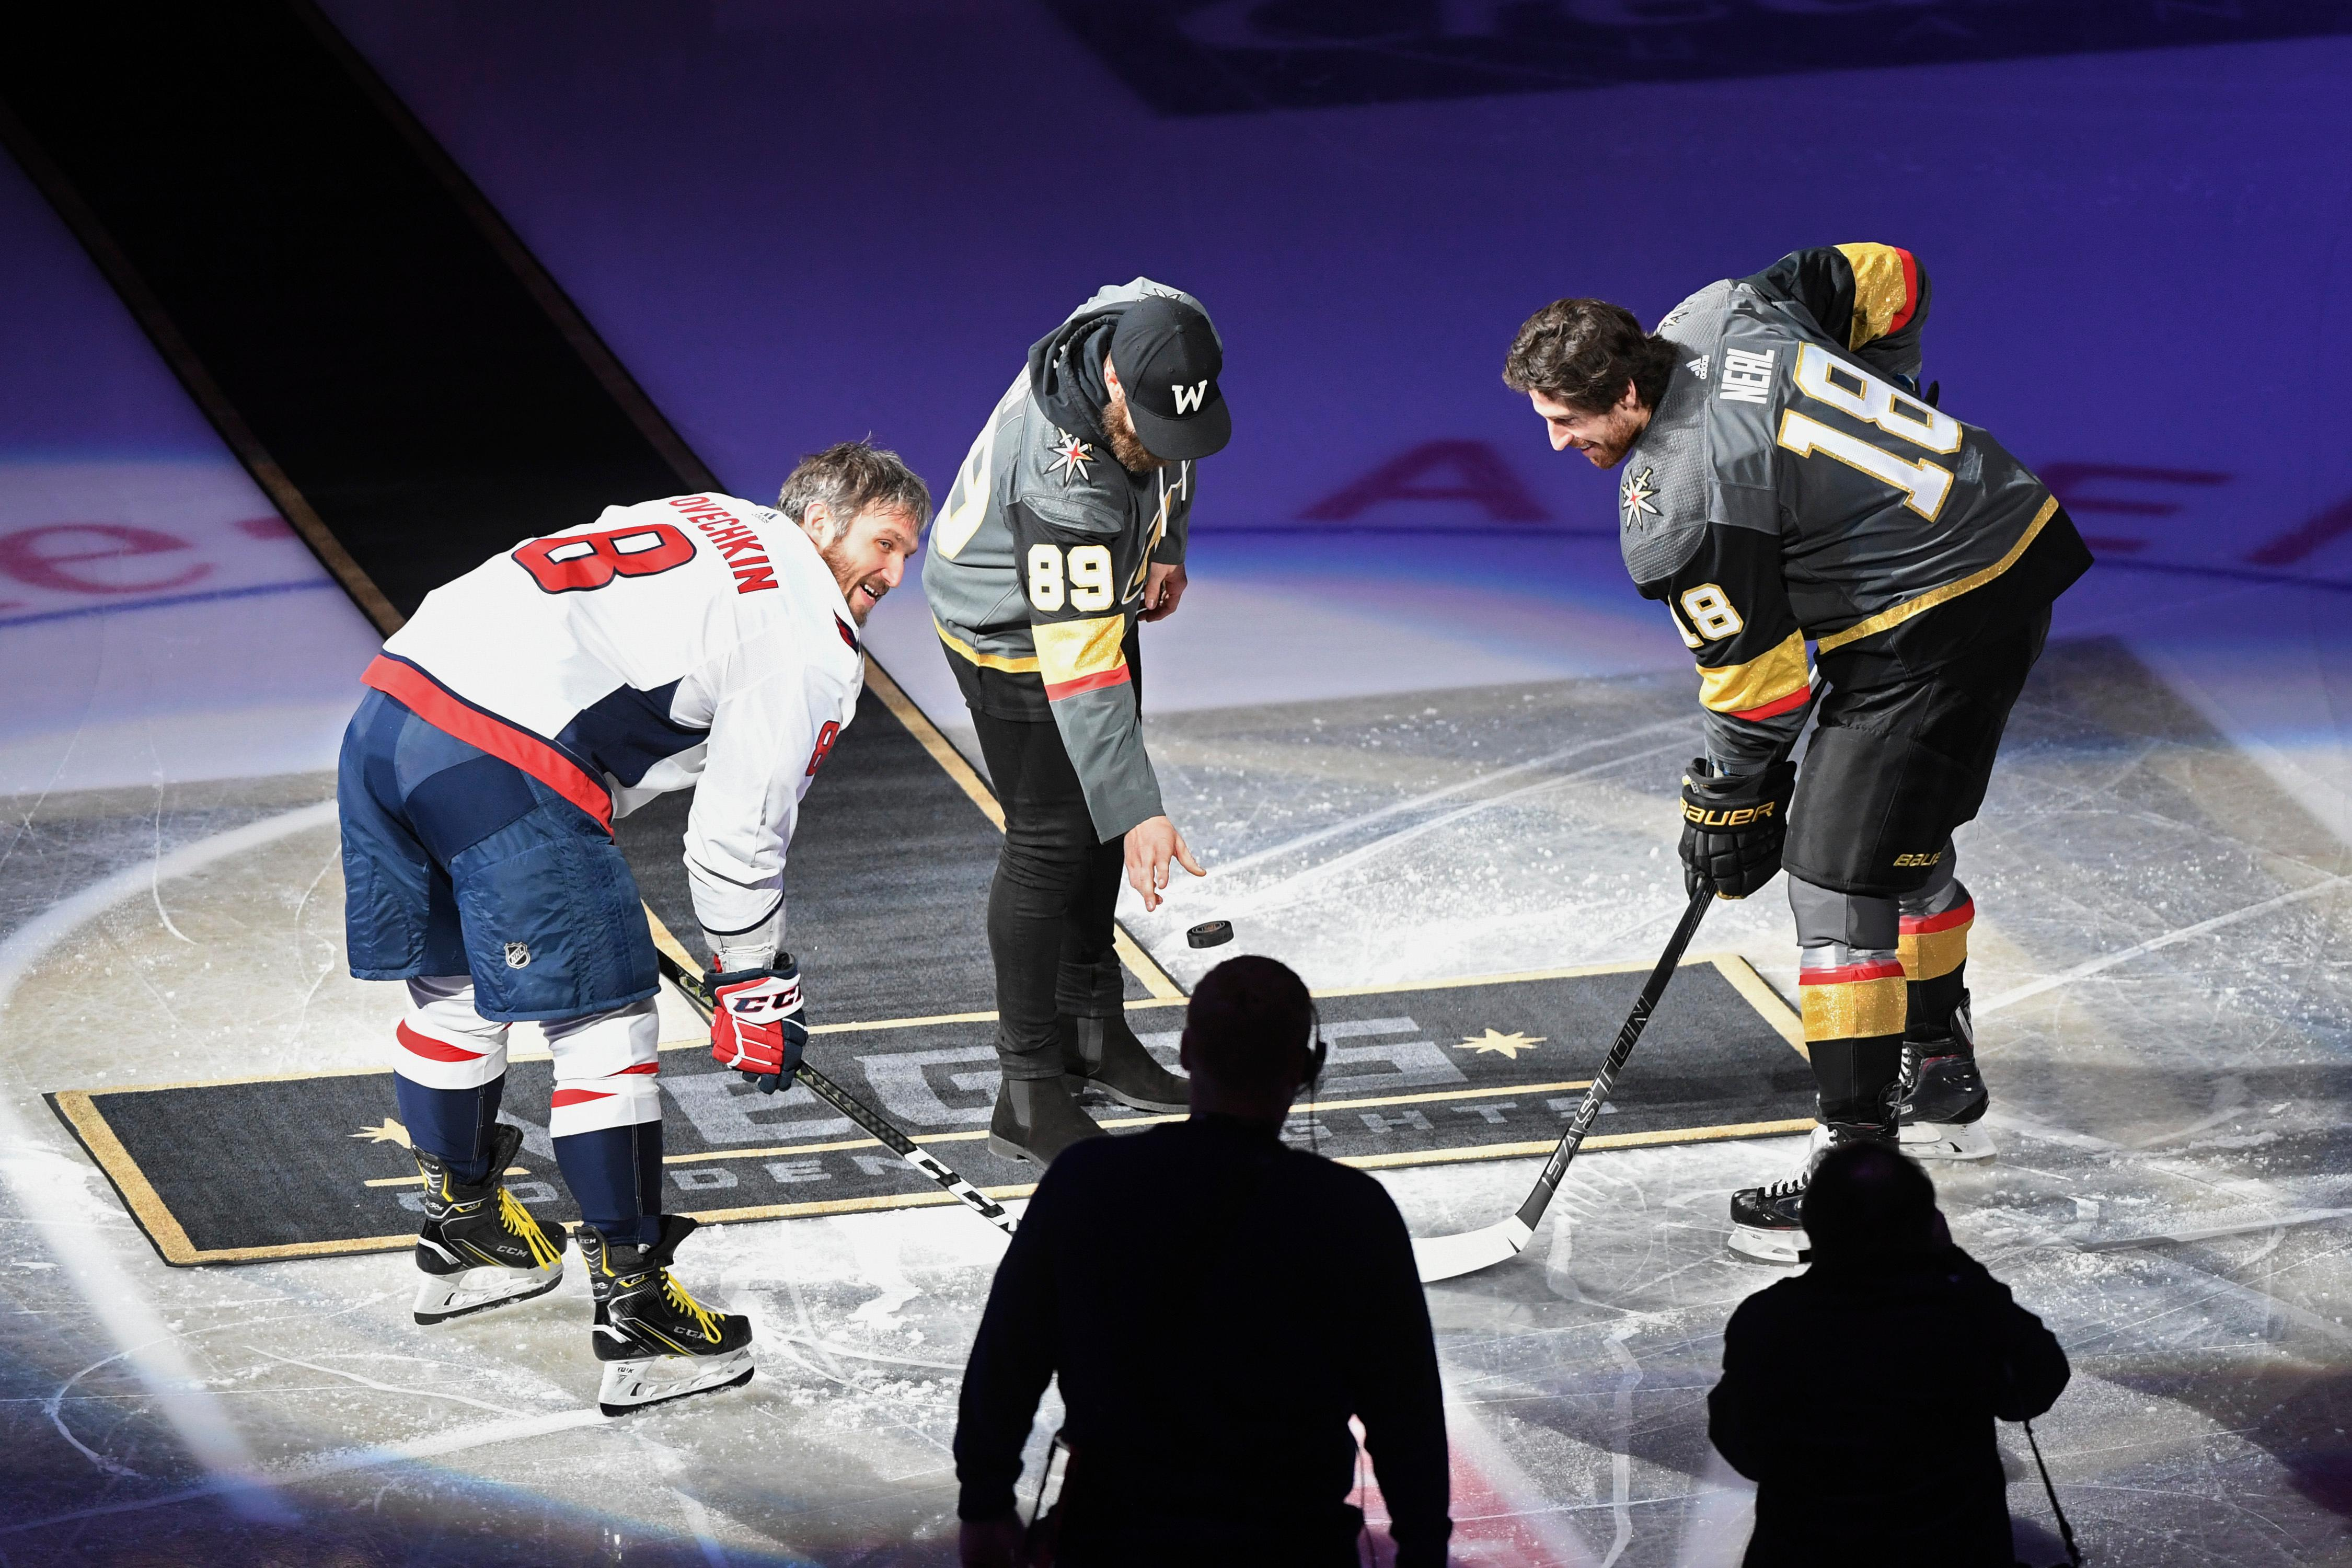 Washington Nationals pitcher and Las Vegas native Bryce Harper drops the ceremonial first puck as Washington Capitals left wing Alex Ovechkin (8) and Vegas Golden Knights left wing James Neal (18) watch before their NHL hockey game Saturday, December 23, 2017, at T-Mobile Arena in Las Vegas.  CREDIT: Sam Morris/Las Vegas News Bureau